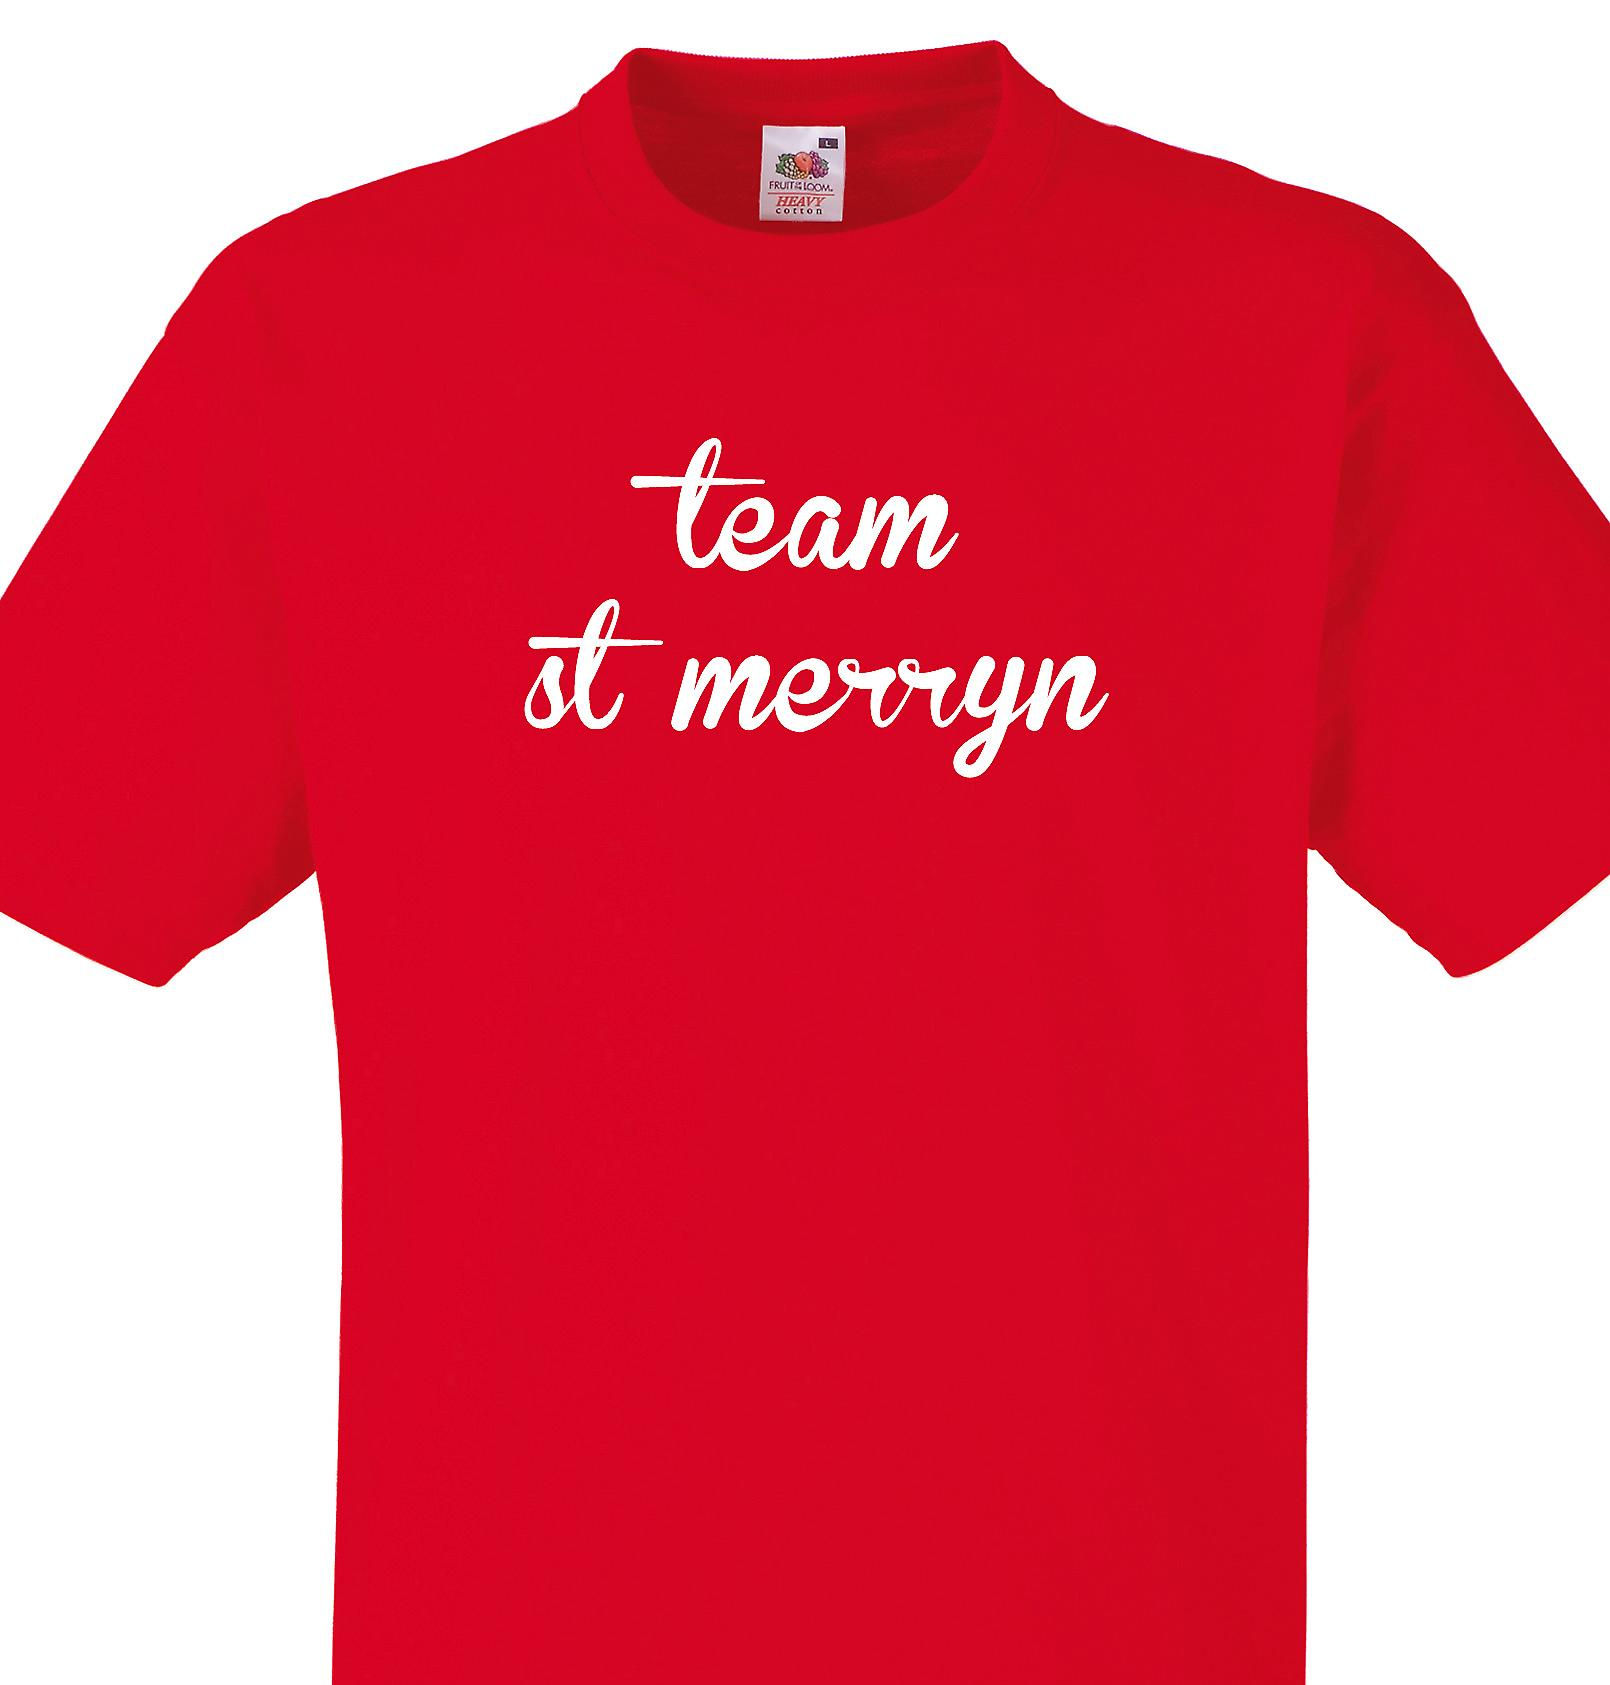 Team St merryn Red T shirt